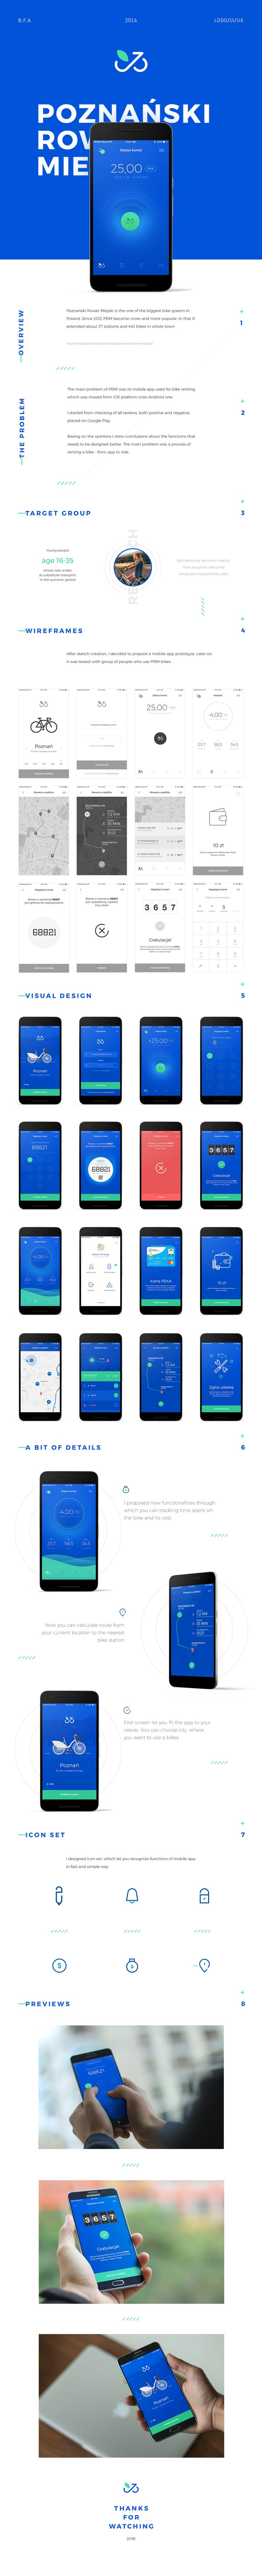 B.F.A. project 2016. Proposal of mobile app for PRM.Poznański Rower Miejski is the one of the biggest bike system in Poland. Since 2012 PRM became more and more popular, in that It extended about 37 stations and 443 bikes in whole town.